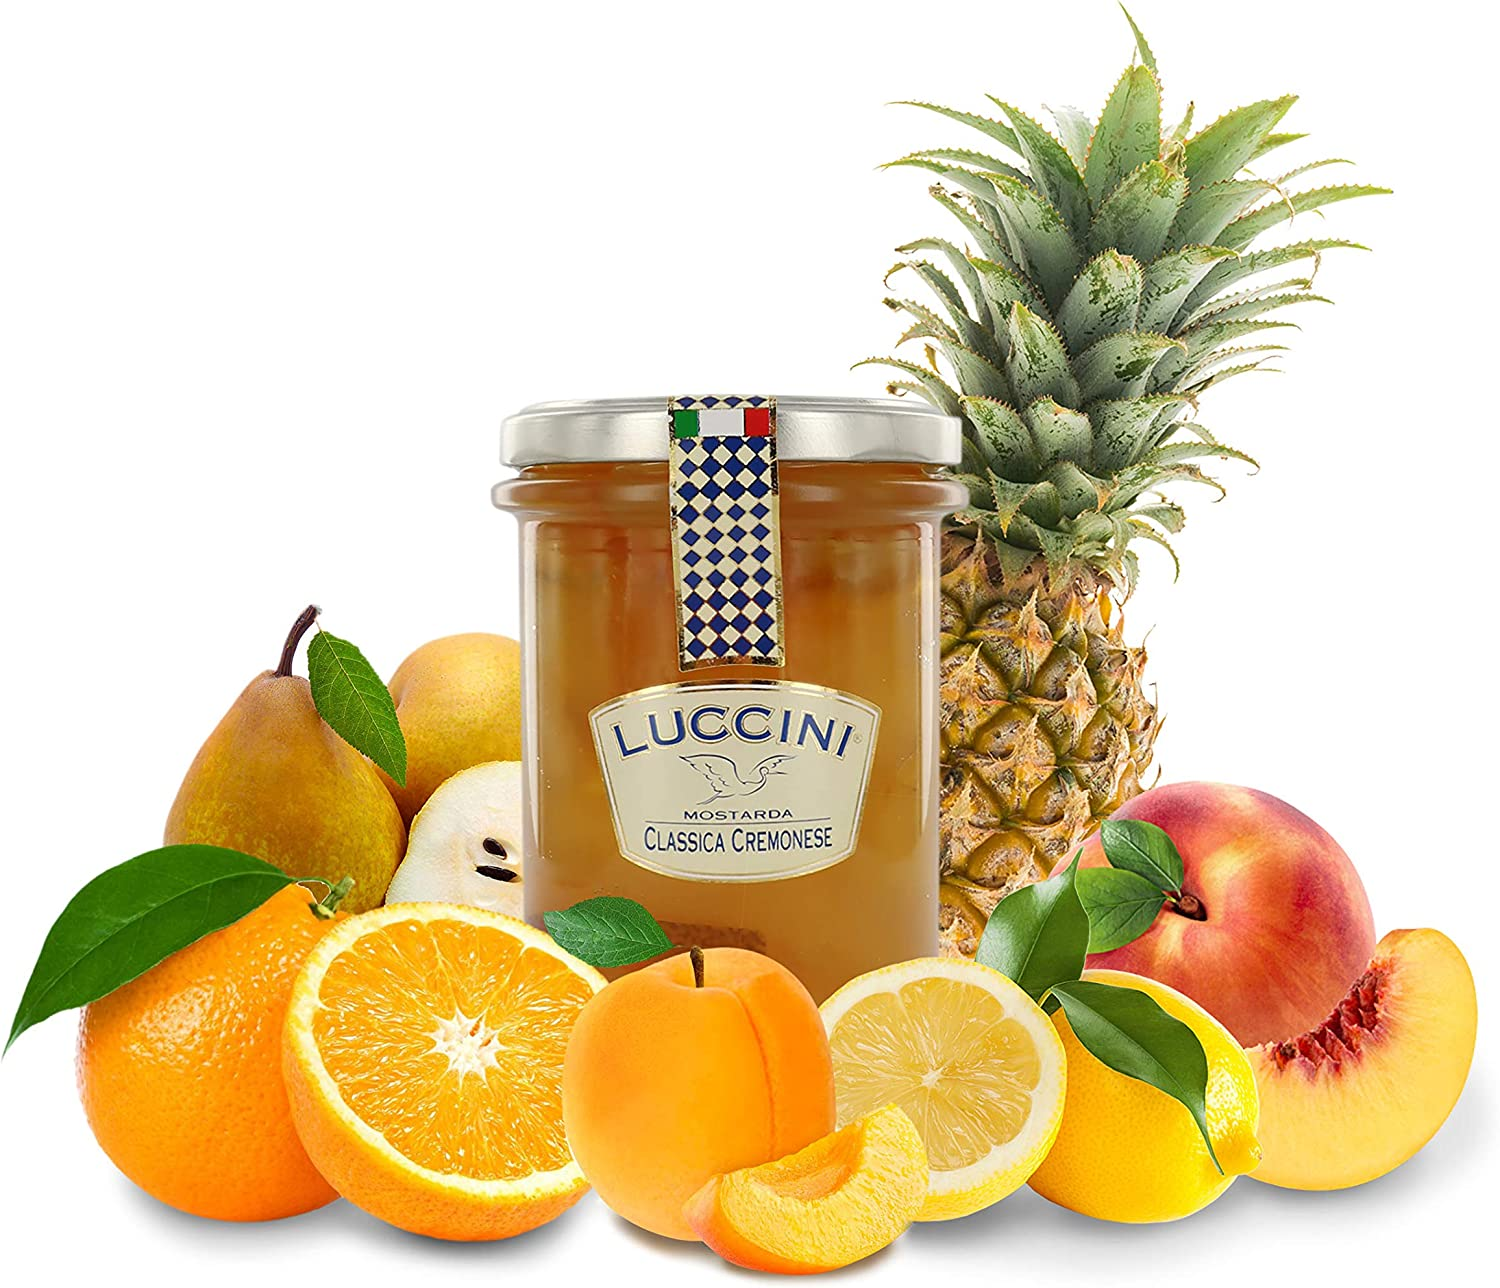 Luccini Artisanal Mostarda di Cremona, Assorted Candied Fruits - Italian Speciality Food, Traditional Recipe - 380g/13.4oz